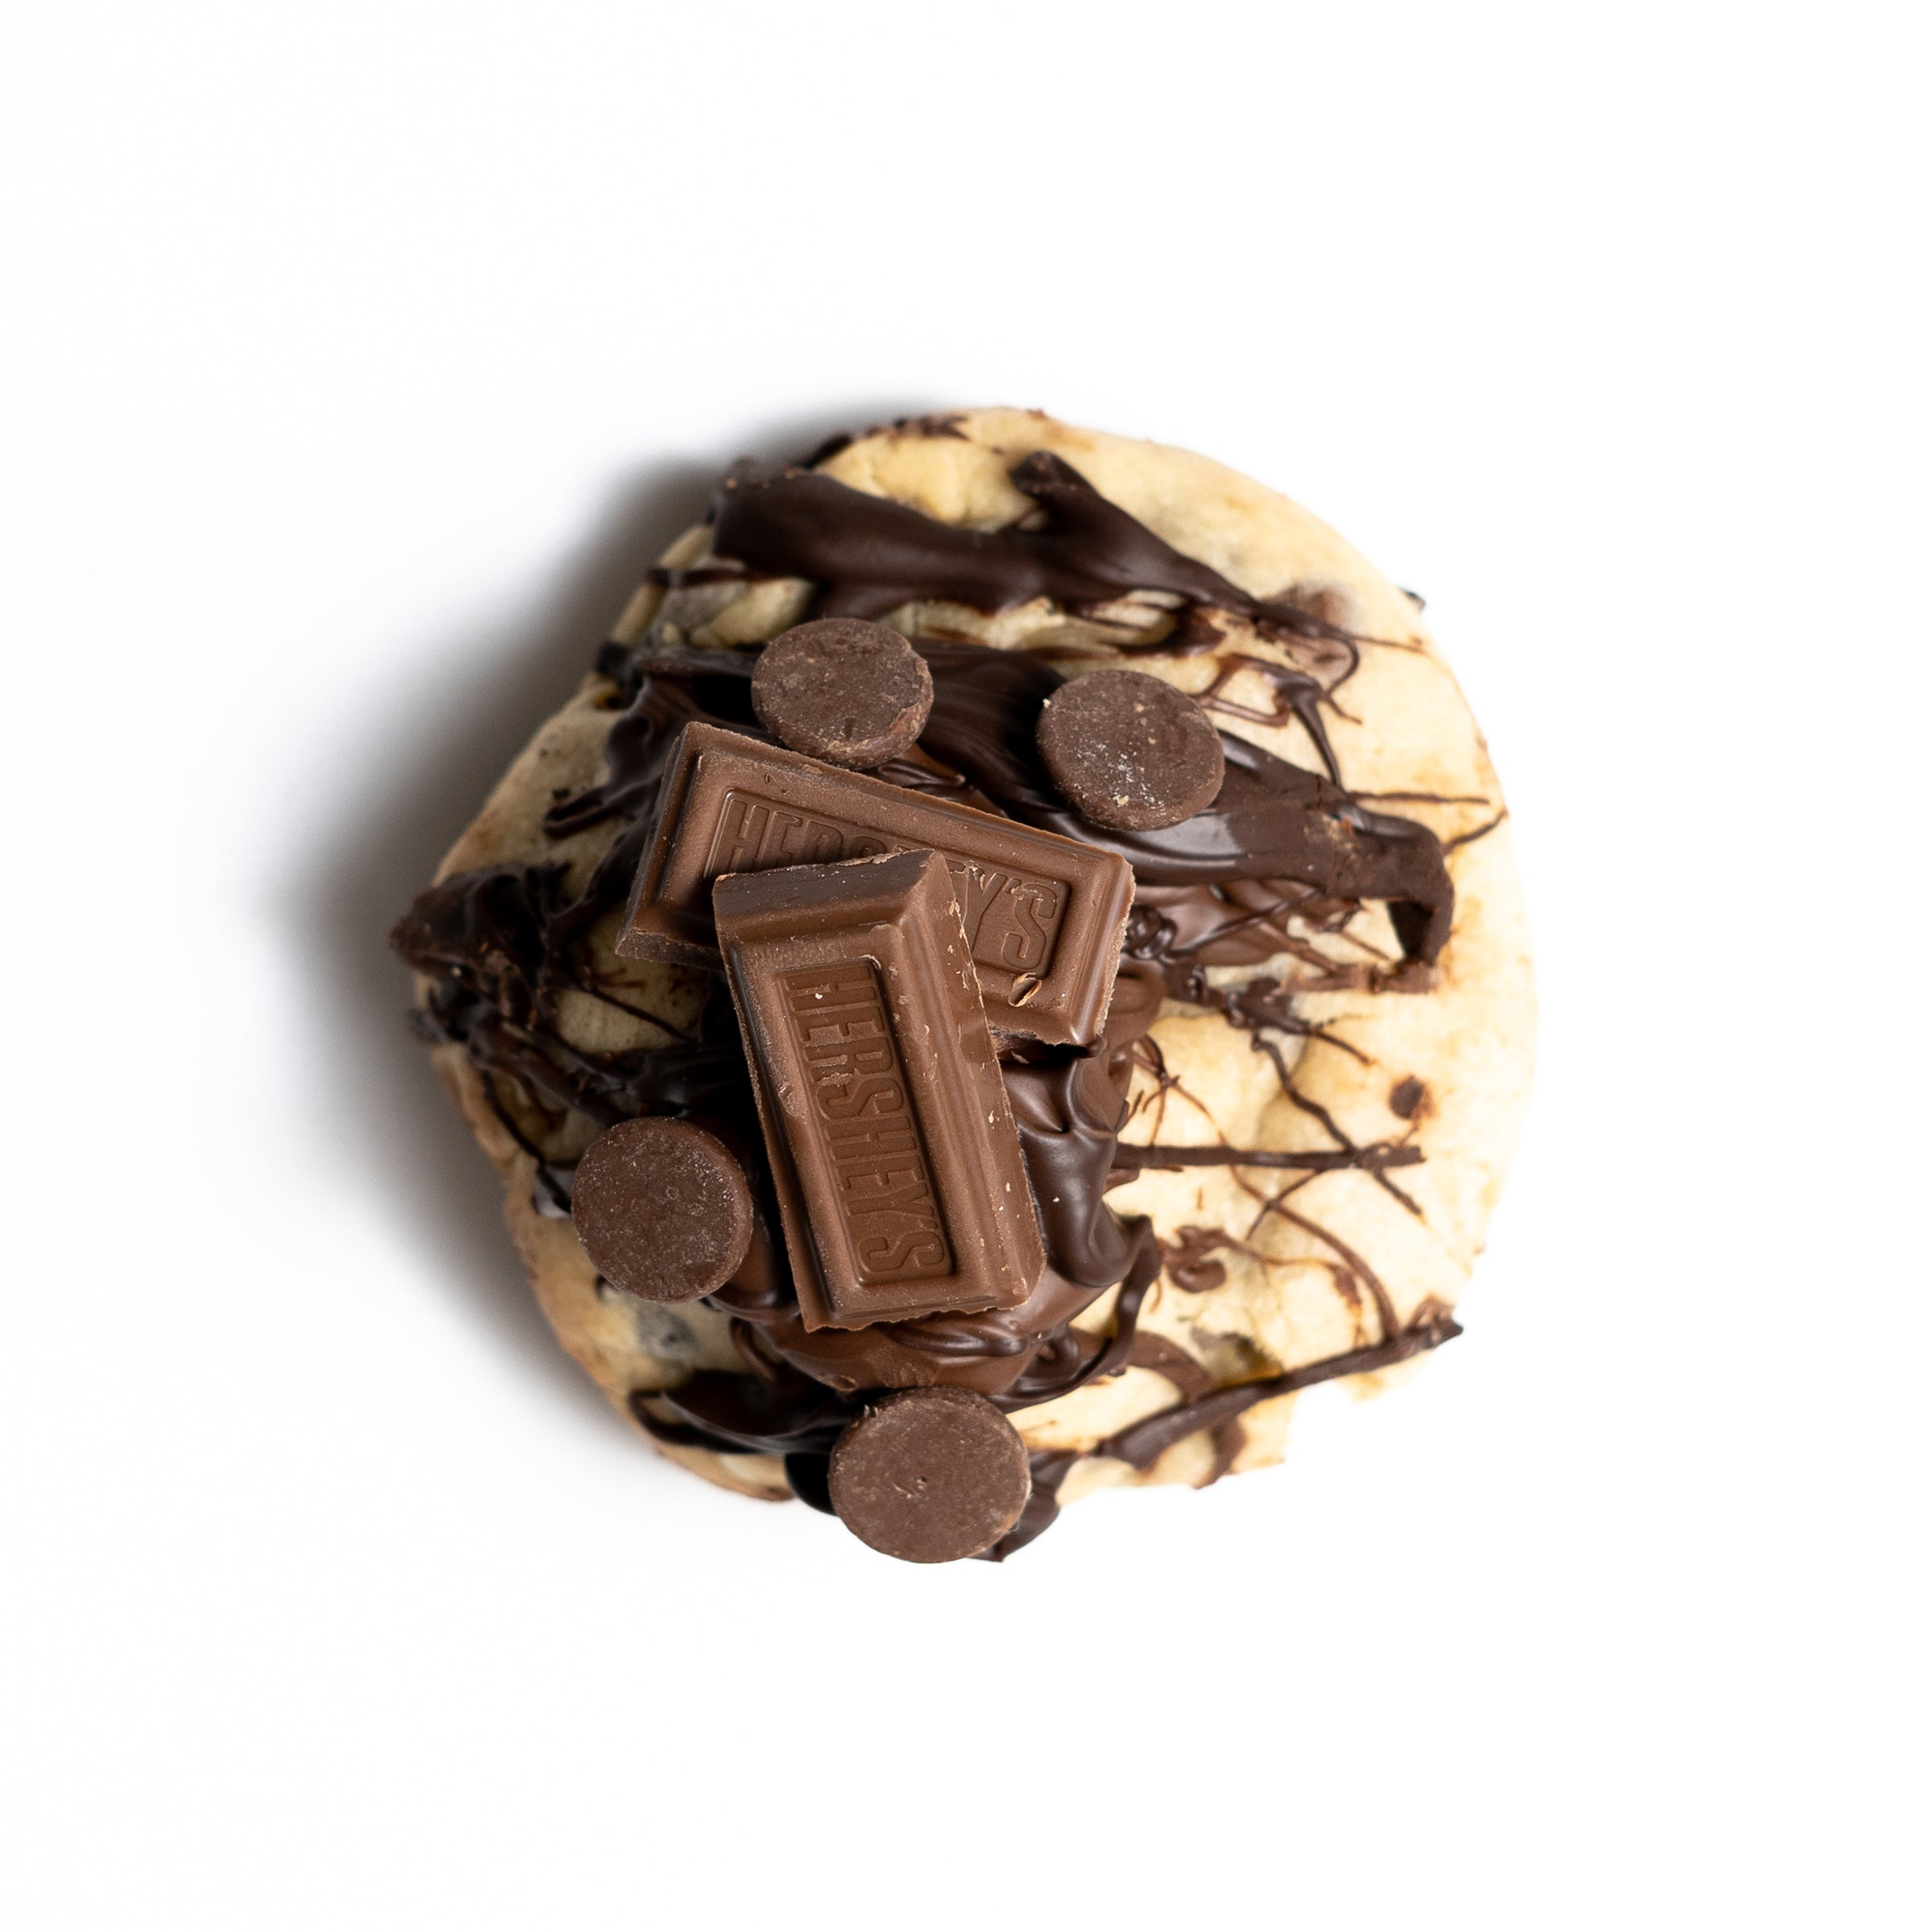 Hershey's Triple Chocolate Chip